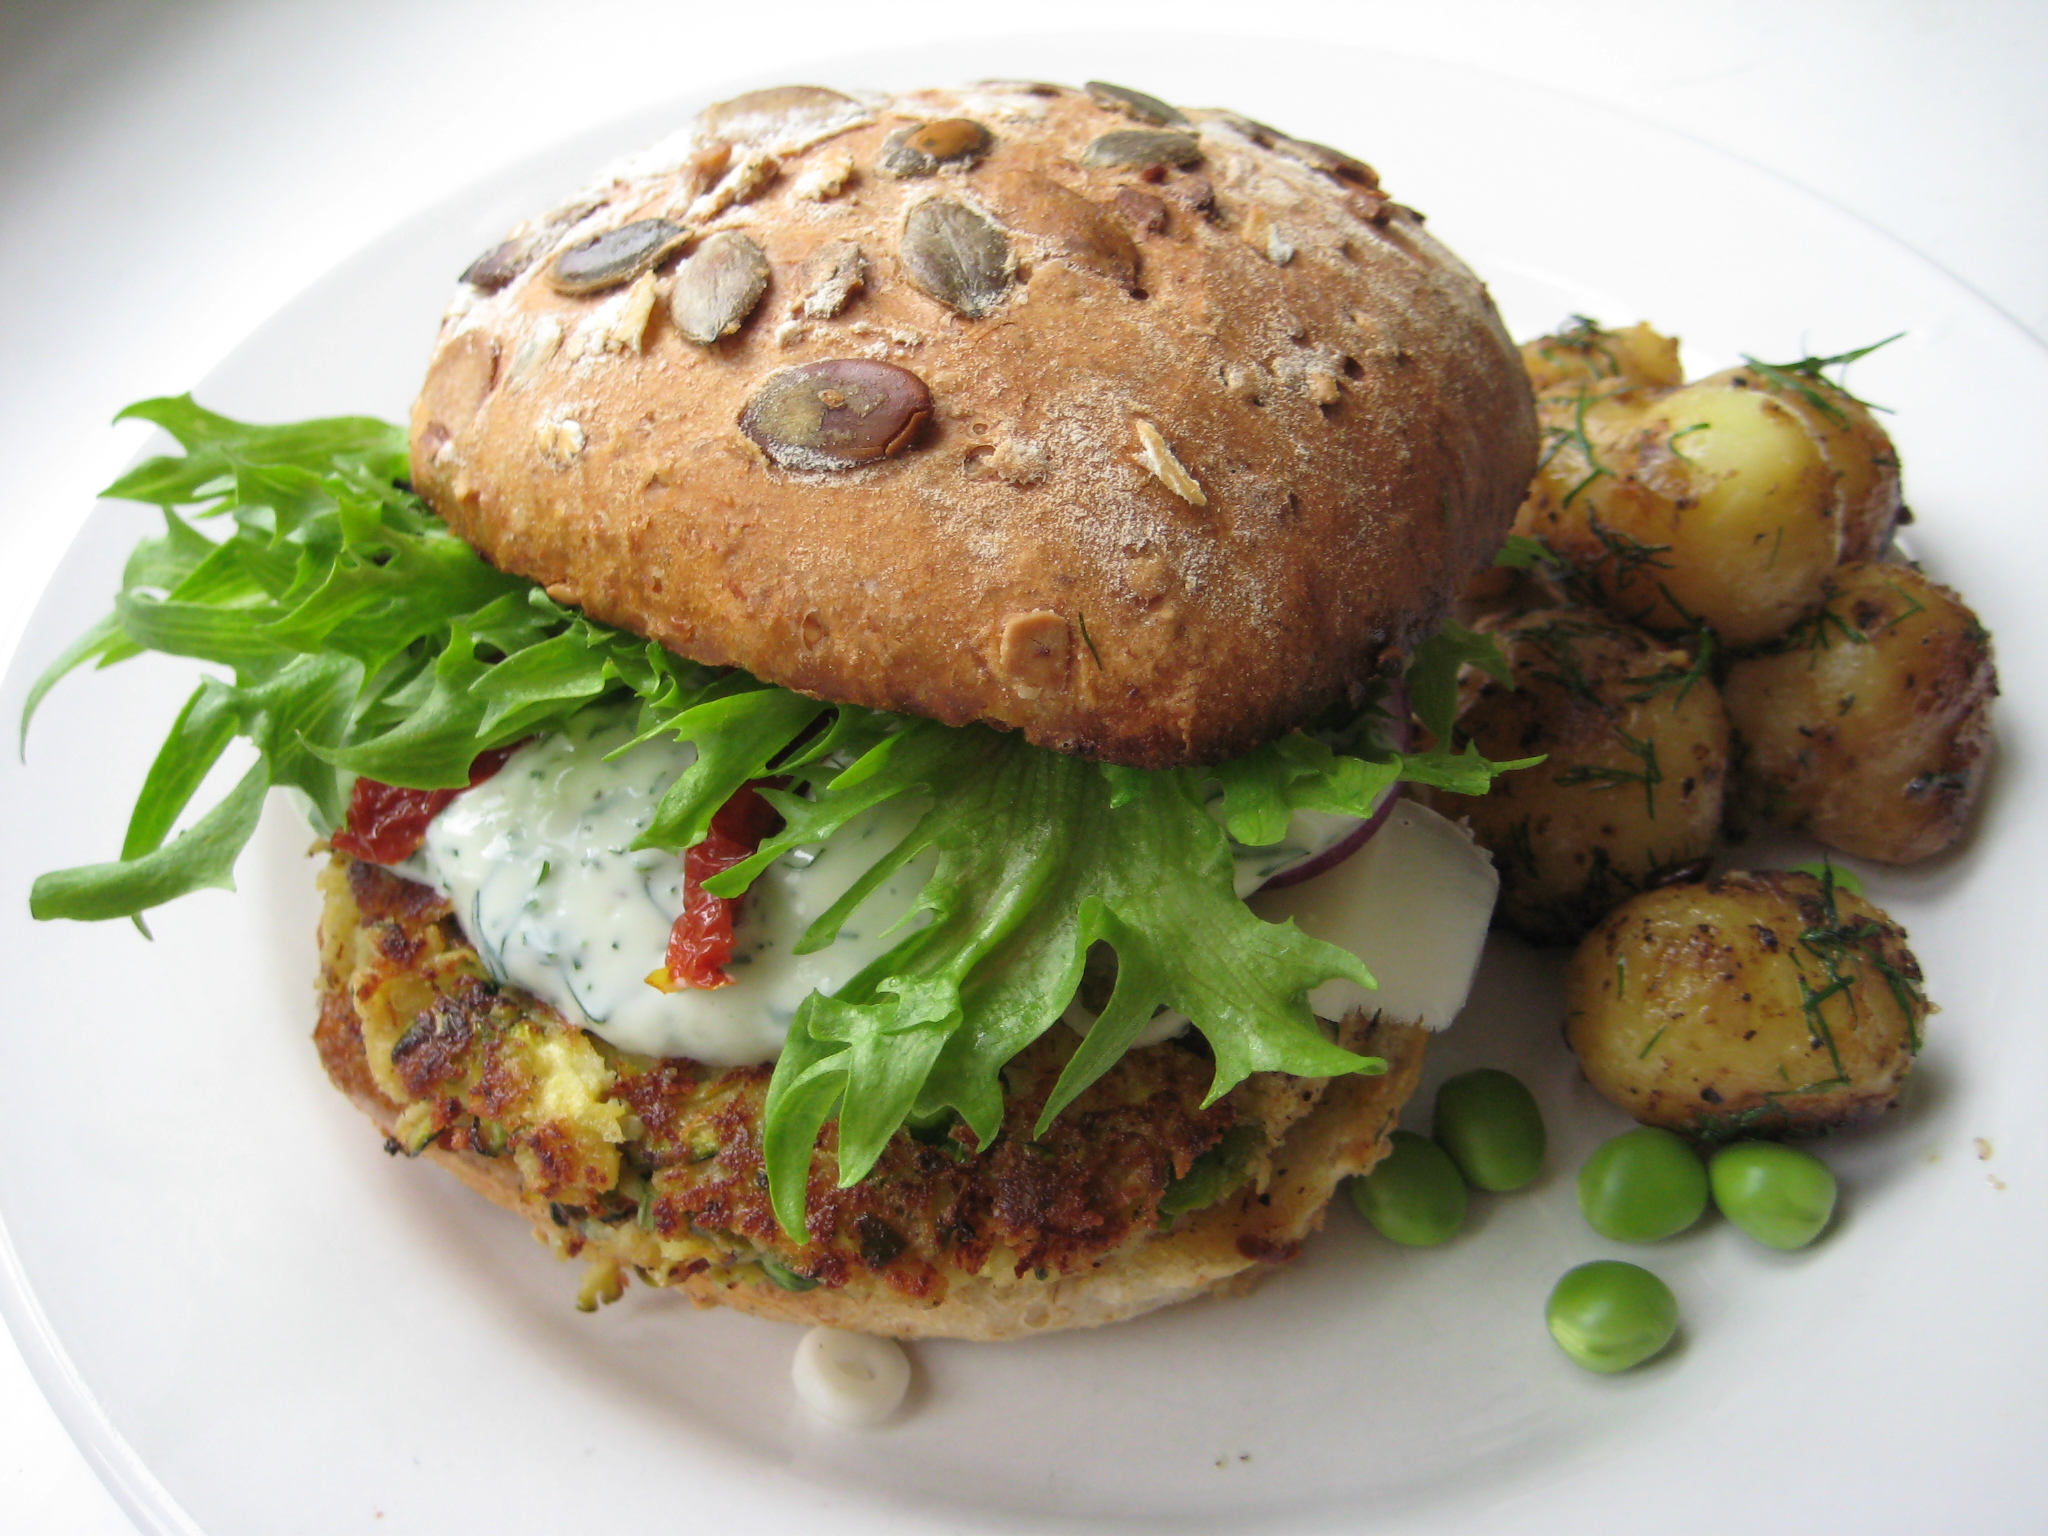 veggie burger miikkahoo flickr creative commons jpg